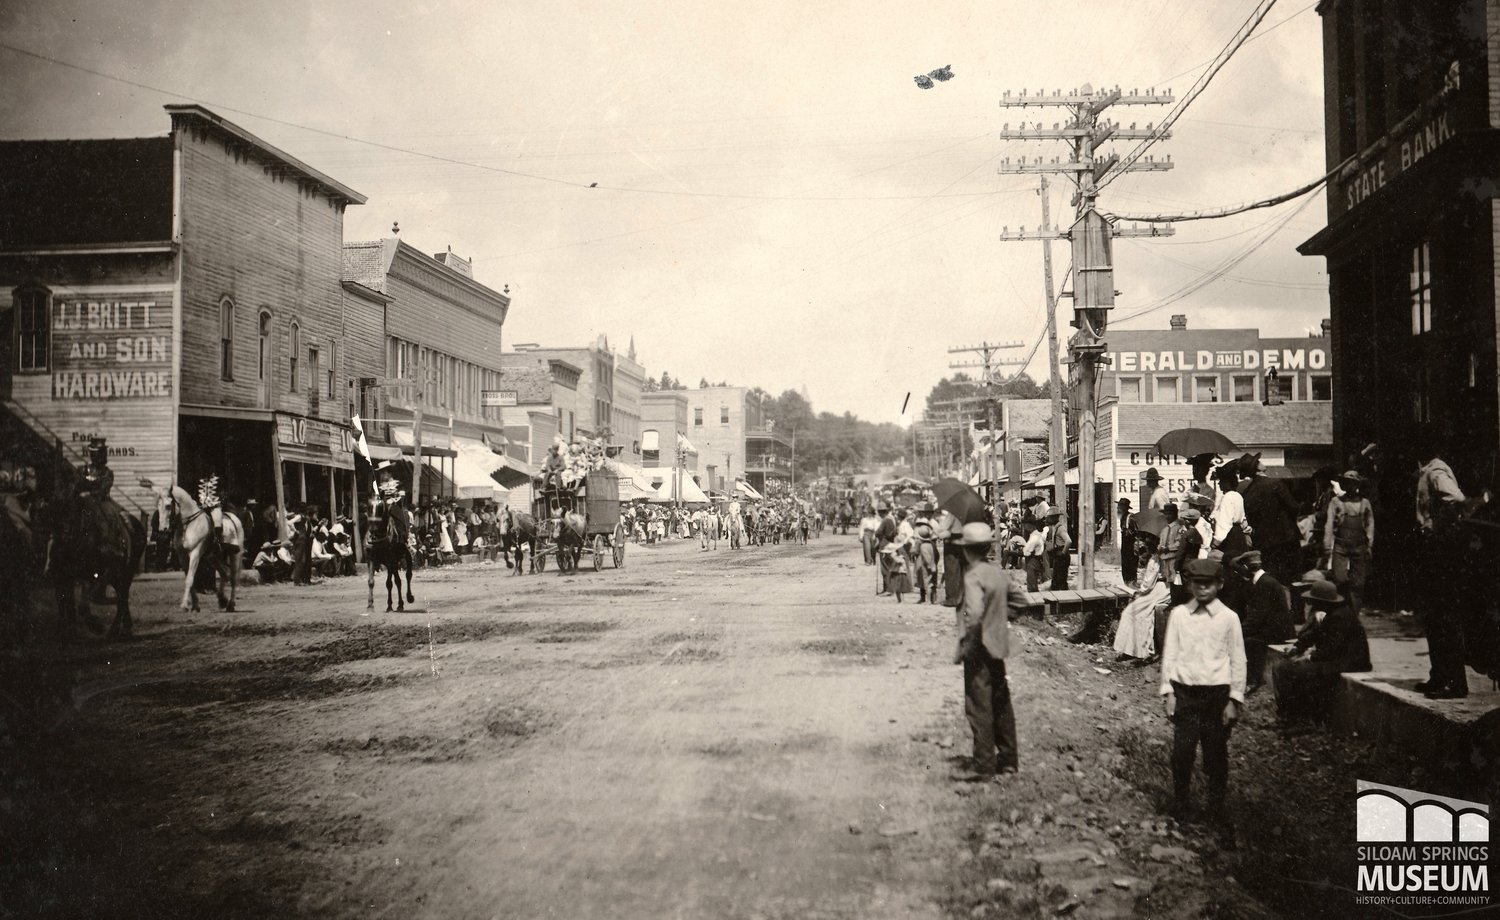 Parades And Celebrations In Siloam Springs Siloam Springs Museum